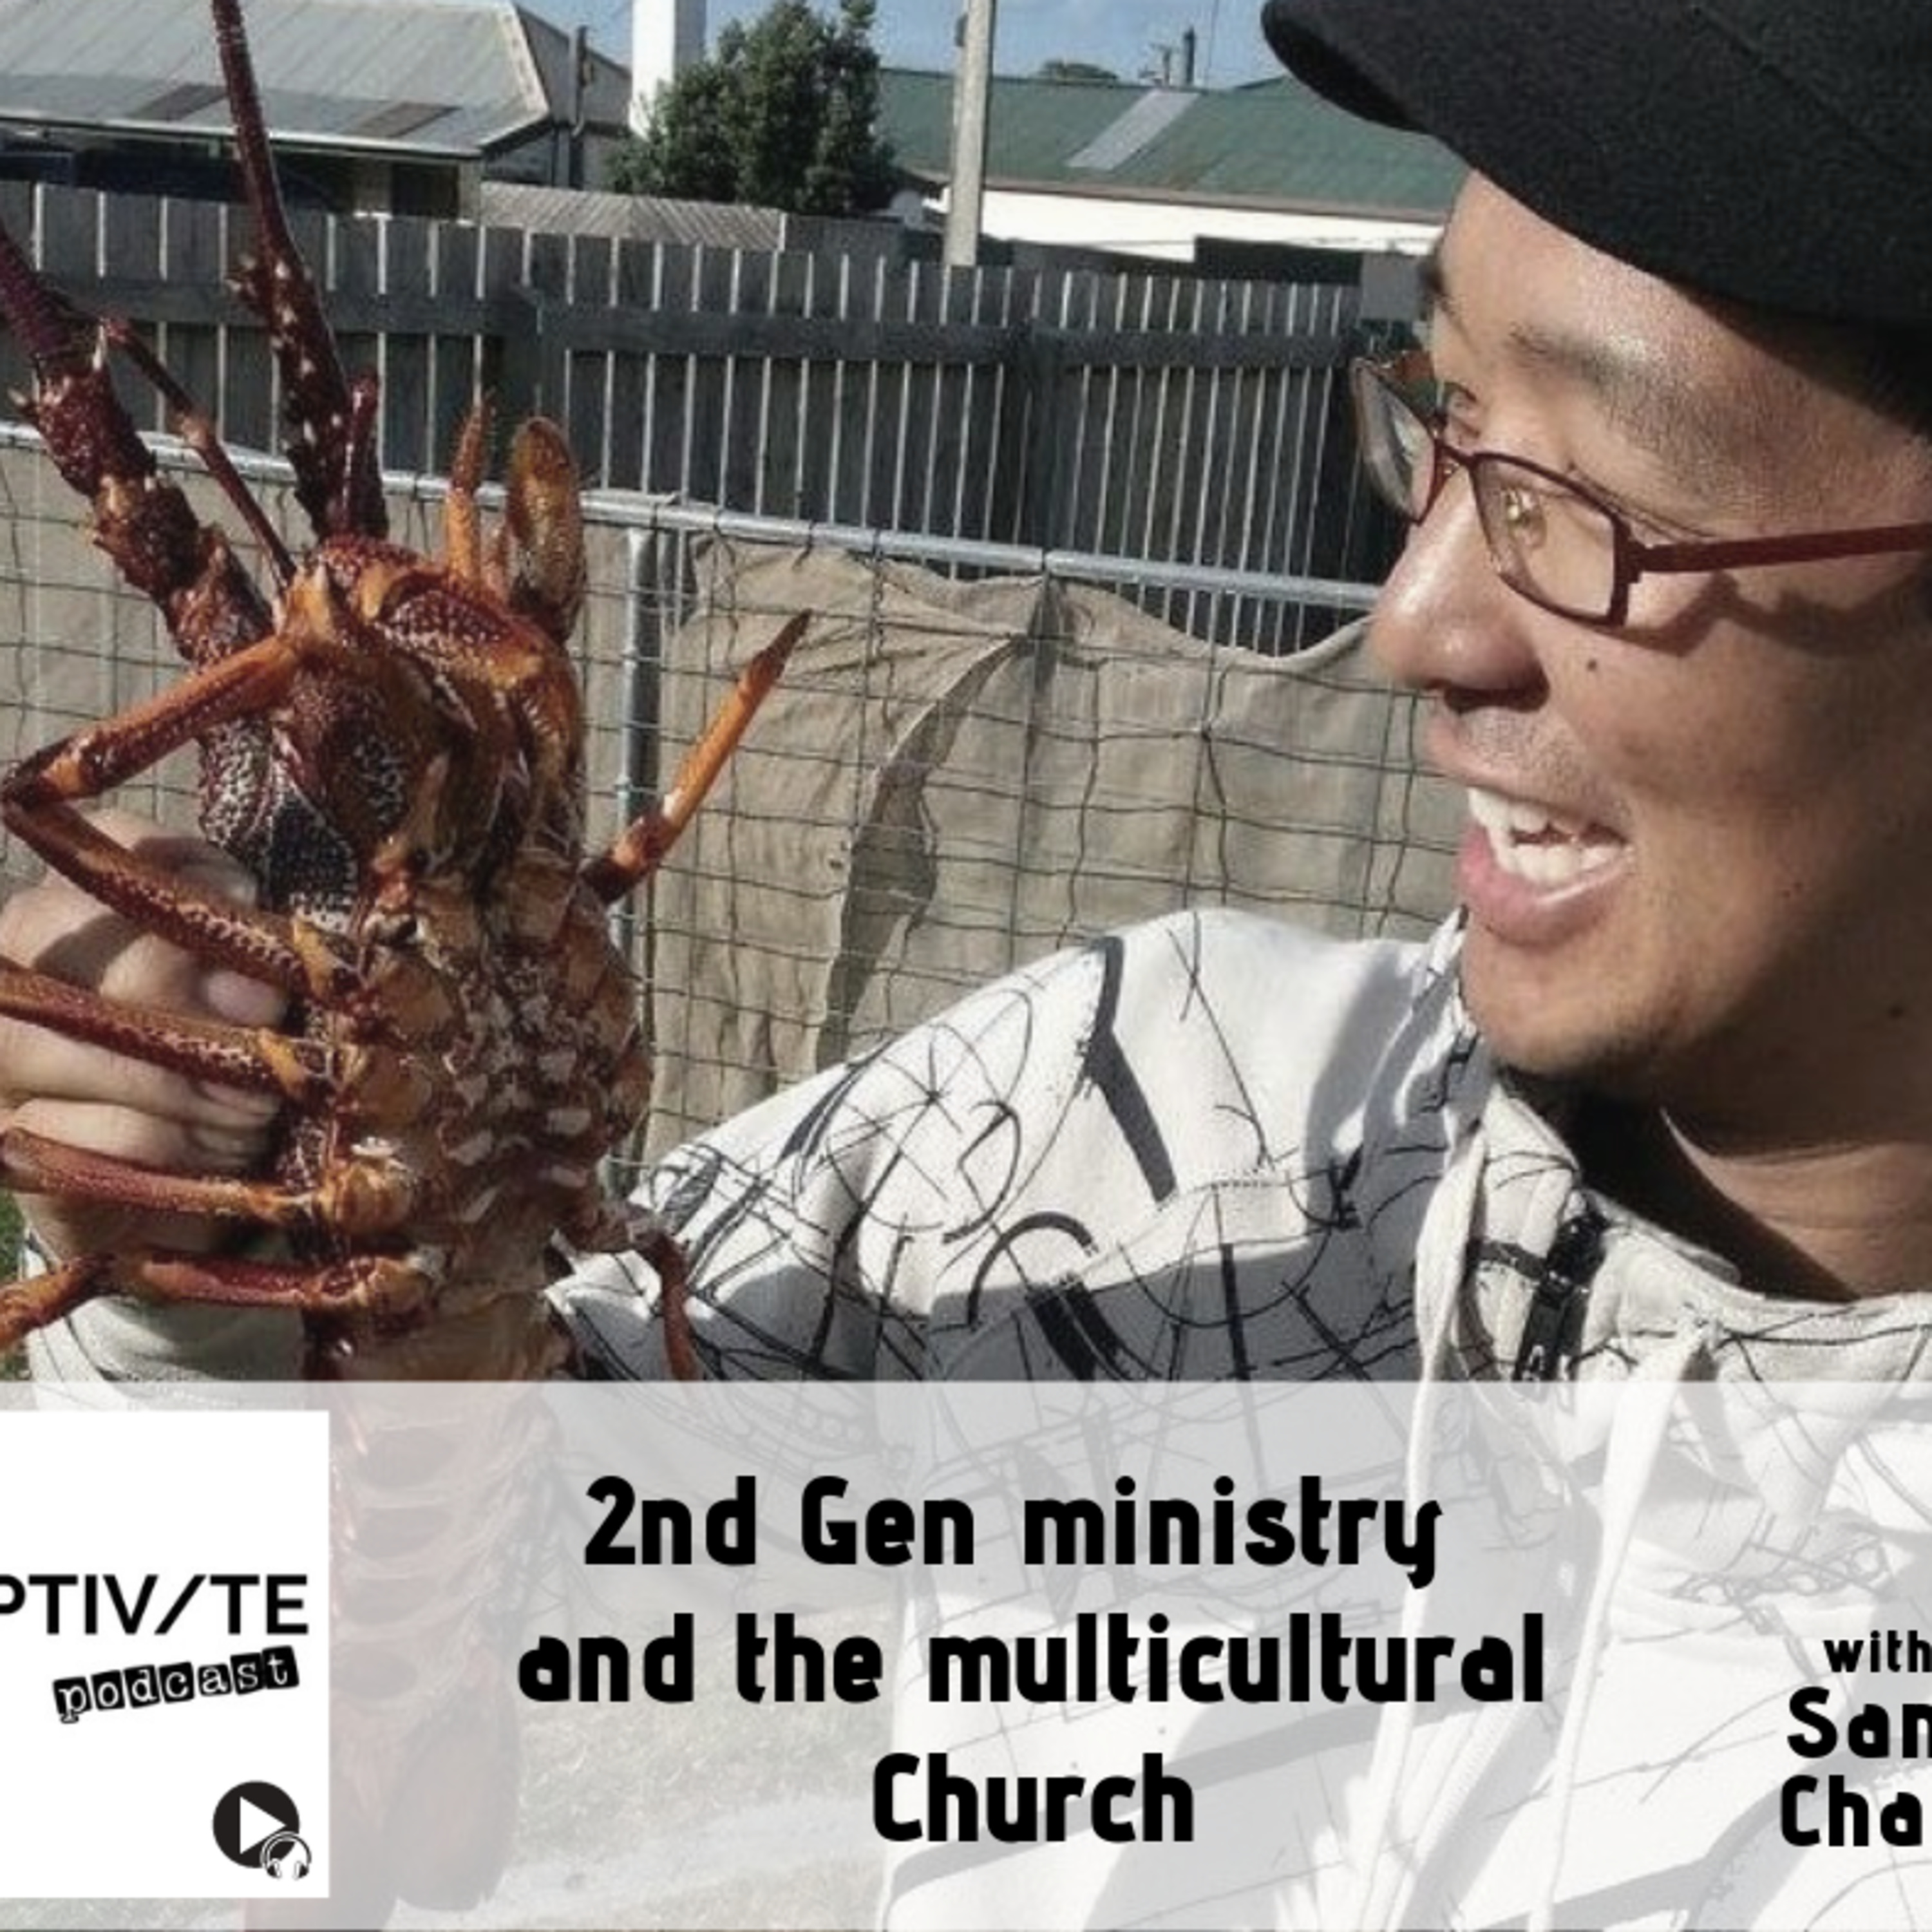 CP 05: Sam Chan - 2nd Gen ministry and the multicultural Church